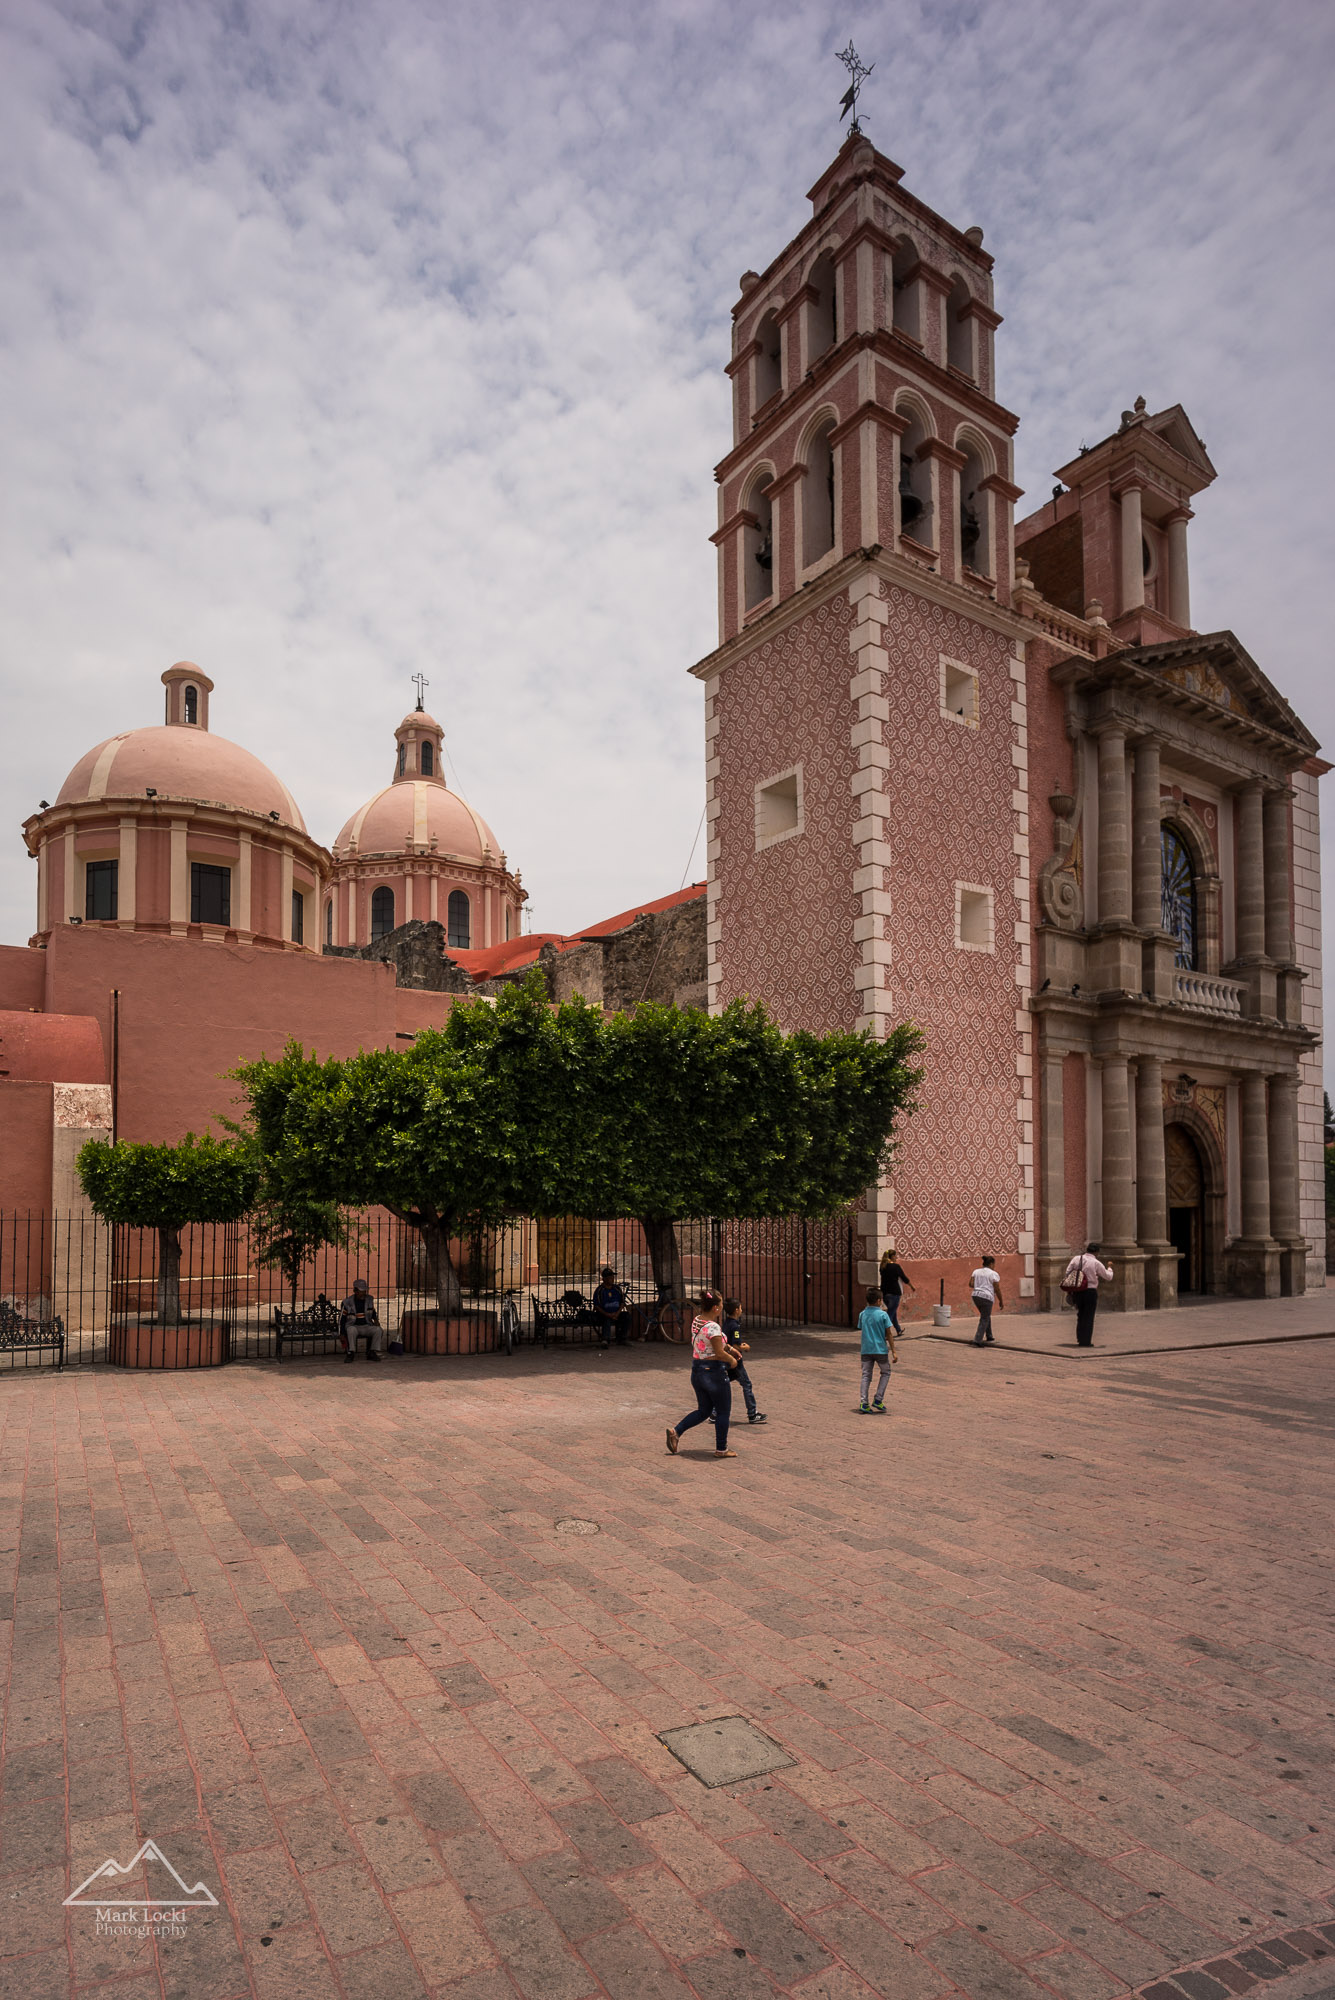 The   Iglesia Santa María de la Asunción in the main square of Tequisquiapan